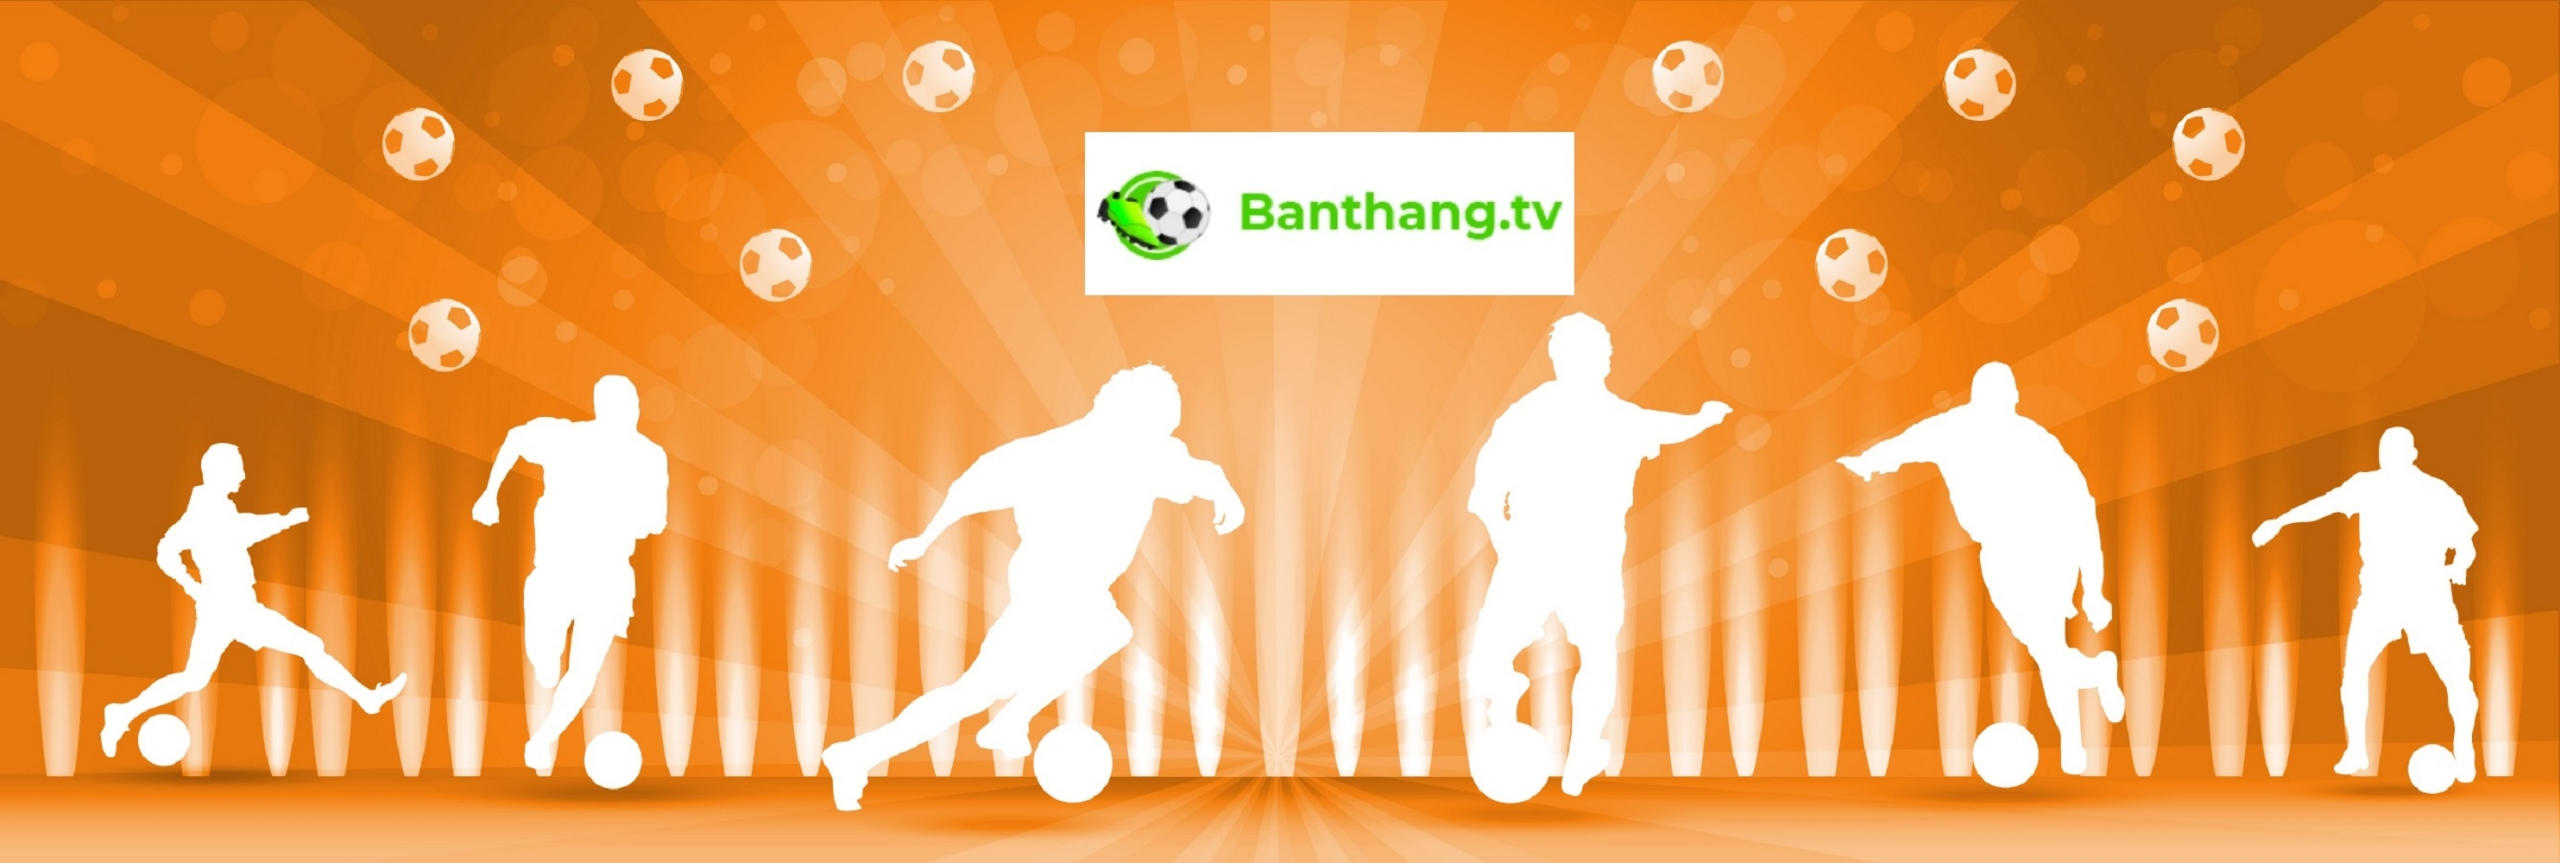 (@banthangtv68) Cover Image